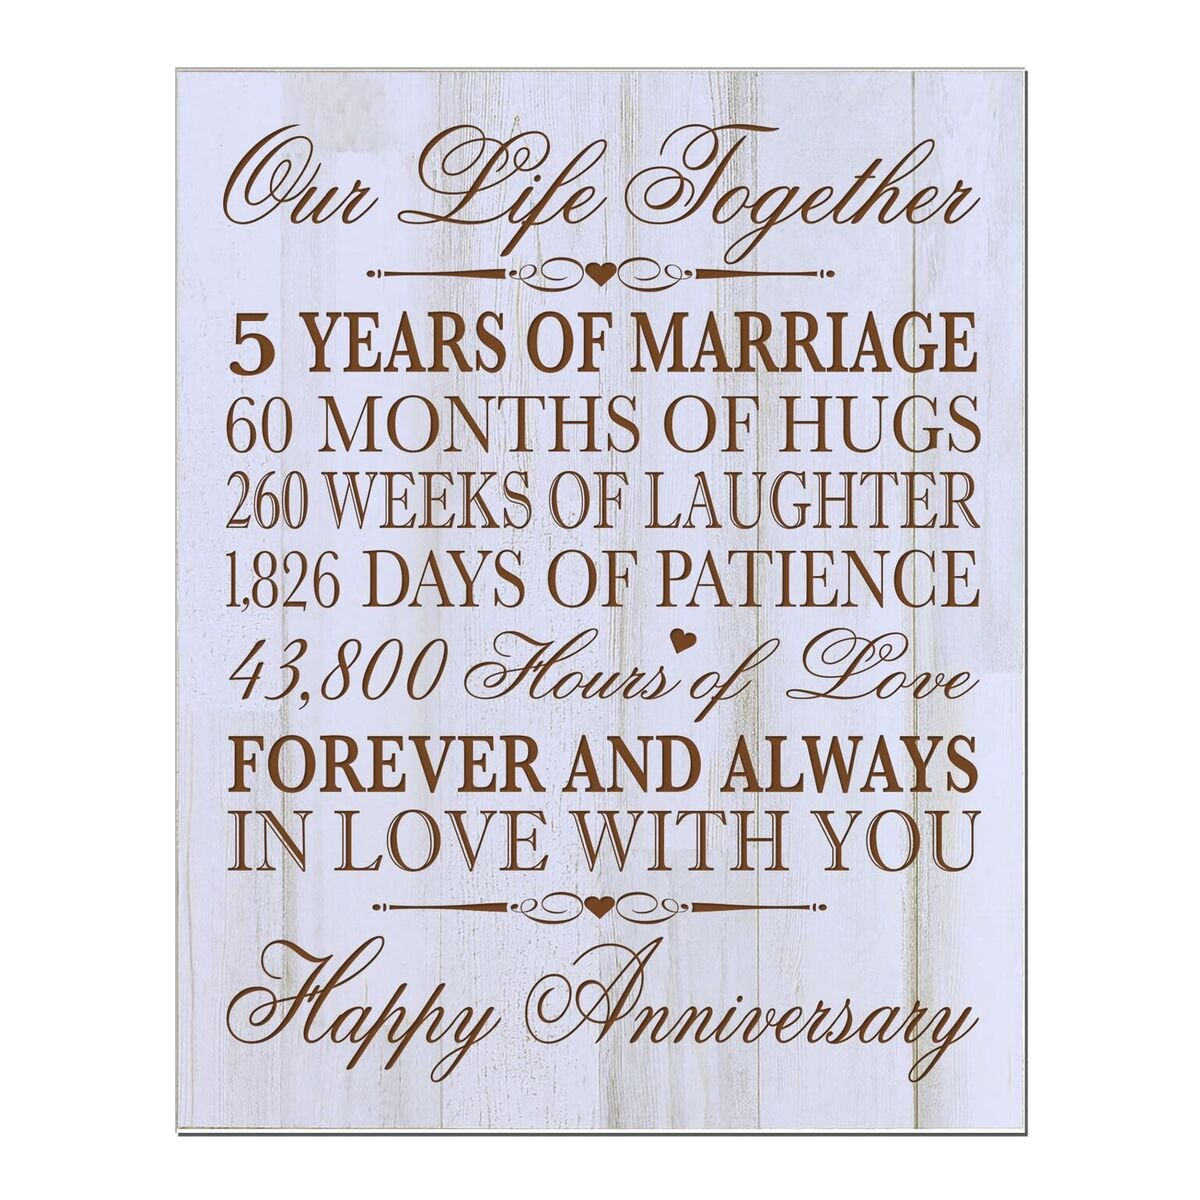 LifeSong Milestones 5th Wedding Anniversary Wall Plaque Gifts for Couple, 5th for Her,5th Wedding for Him 12 W X 15'' H Wall Plaque (Distressed Wood) by LifeSong Milestones